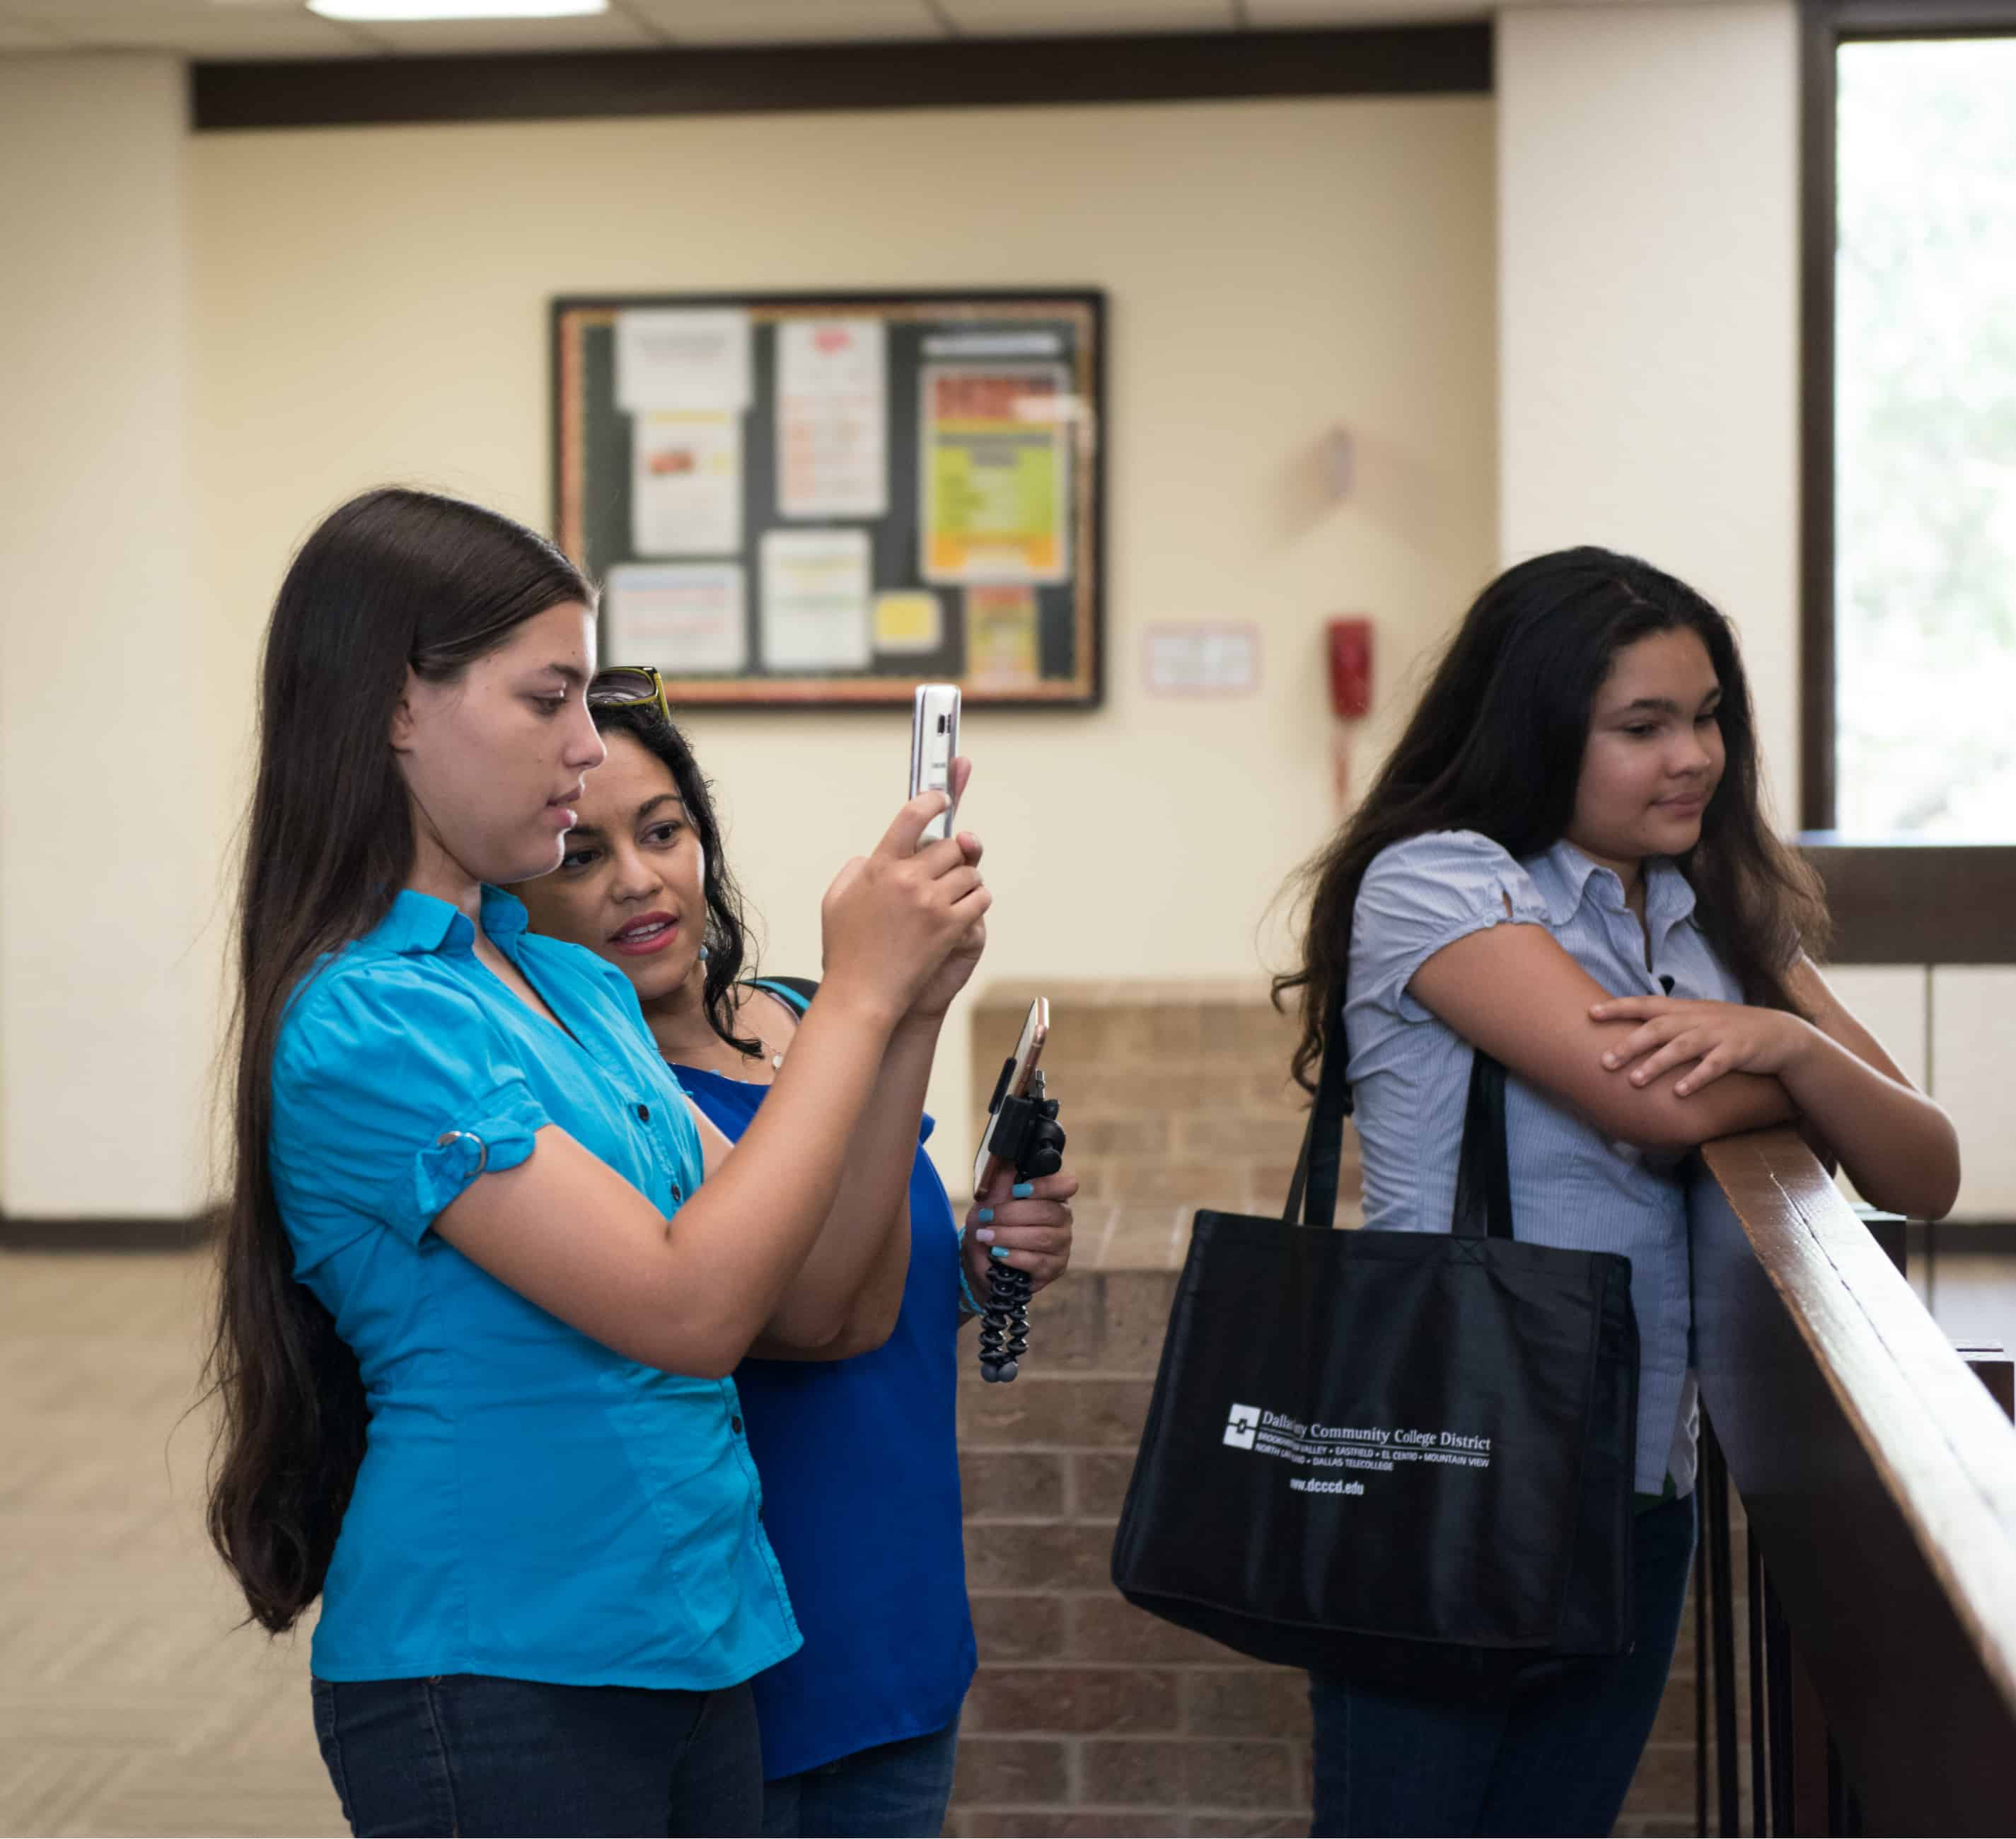 Dallas Community Colleges - Eastfield Campus - taking photos